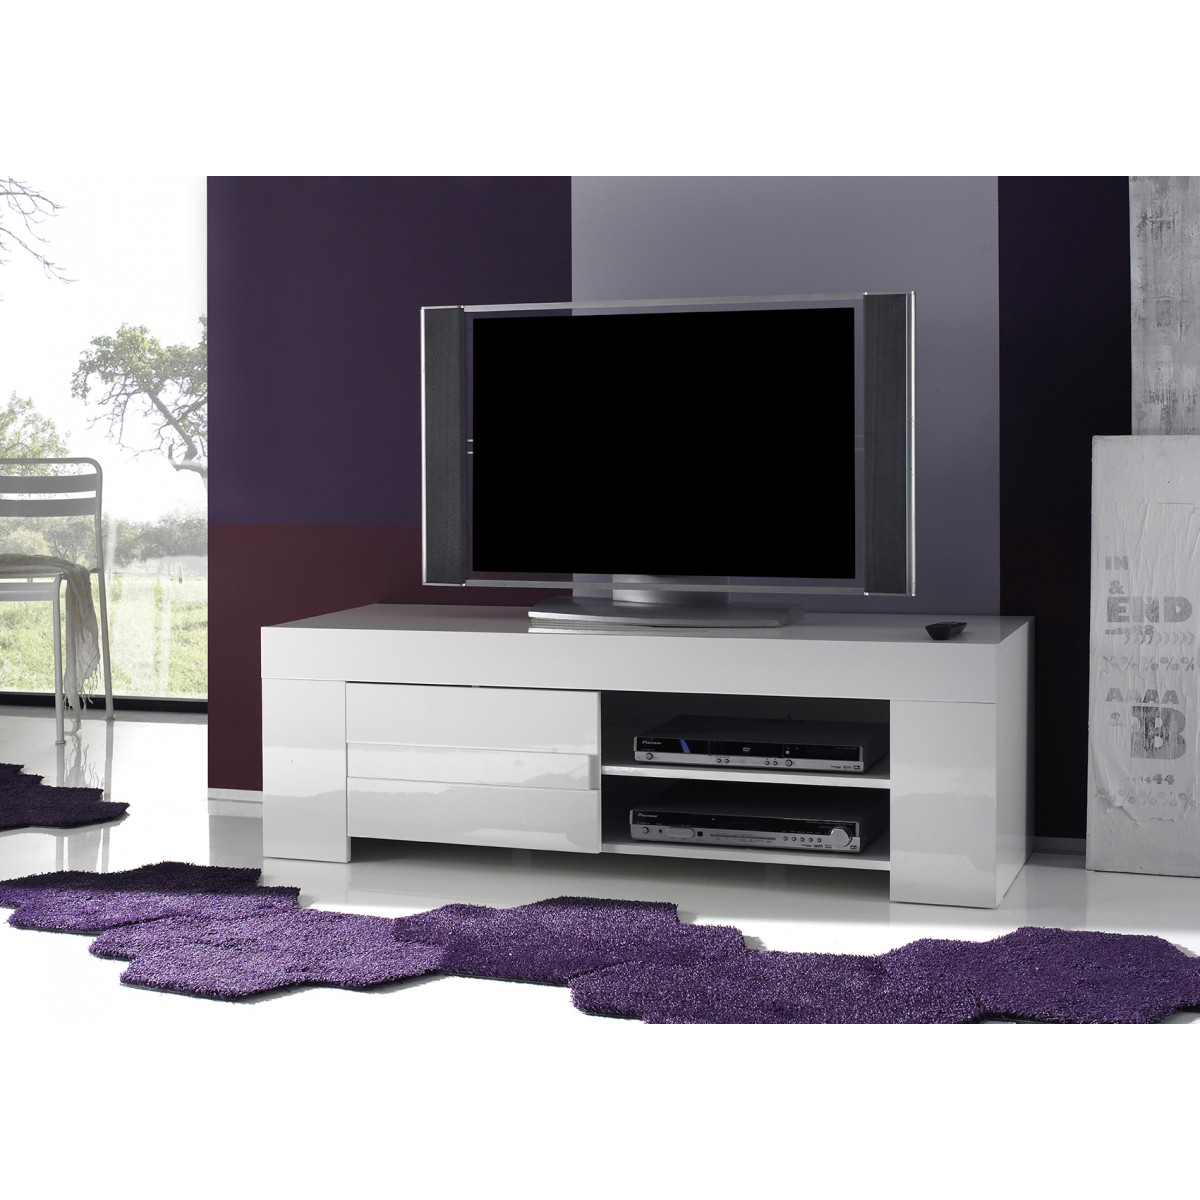 Meuble Tv Design Laque Blanc Pivotant Max Artzein Com # Meuble De Tv D Angle Design